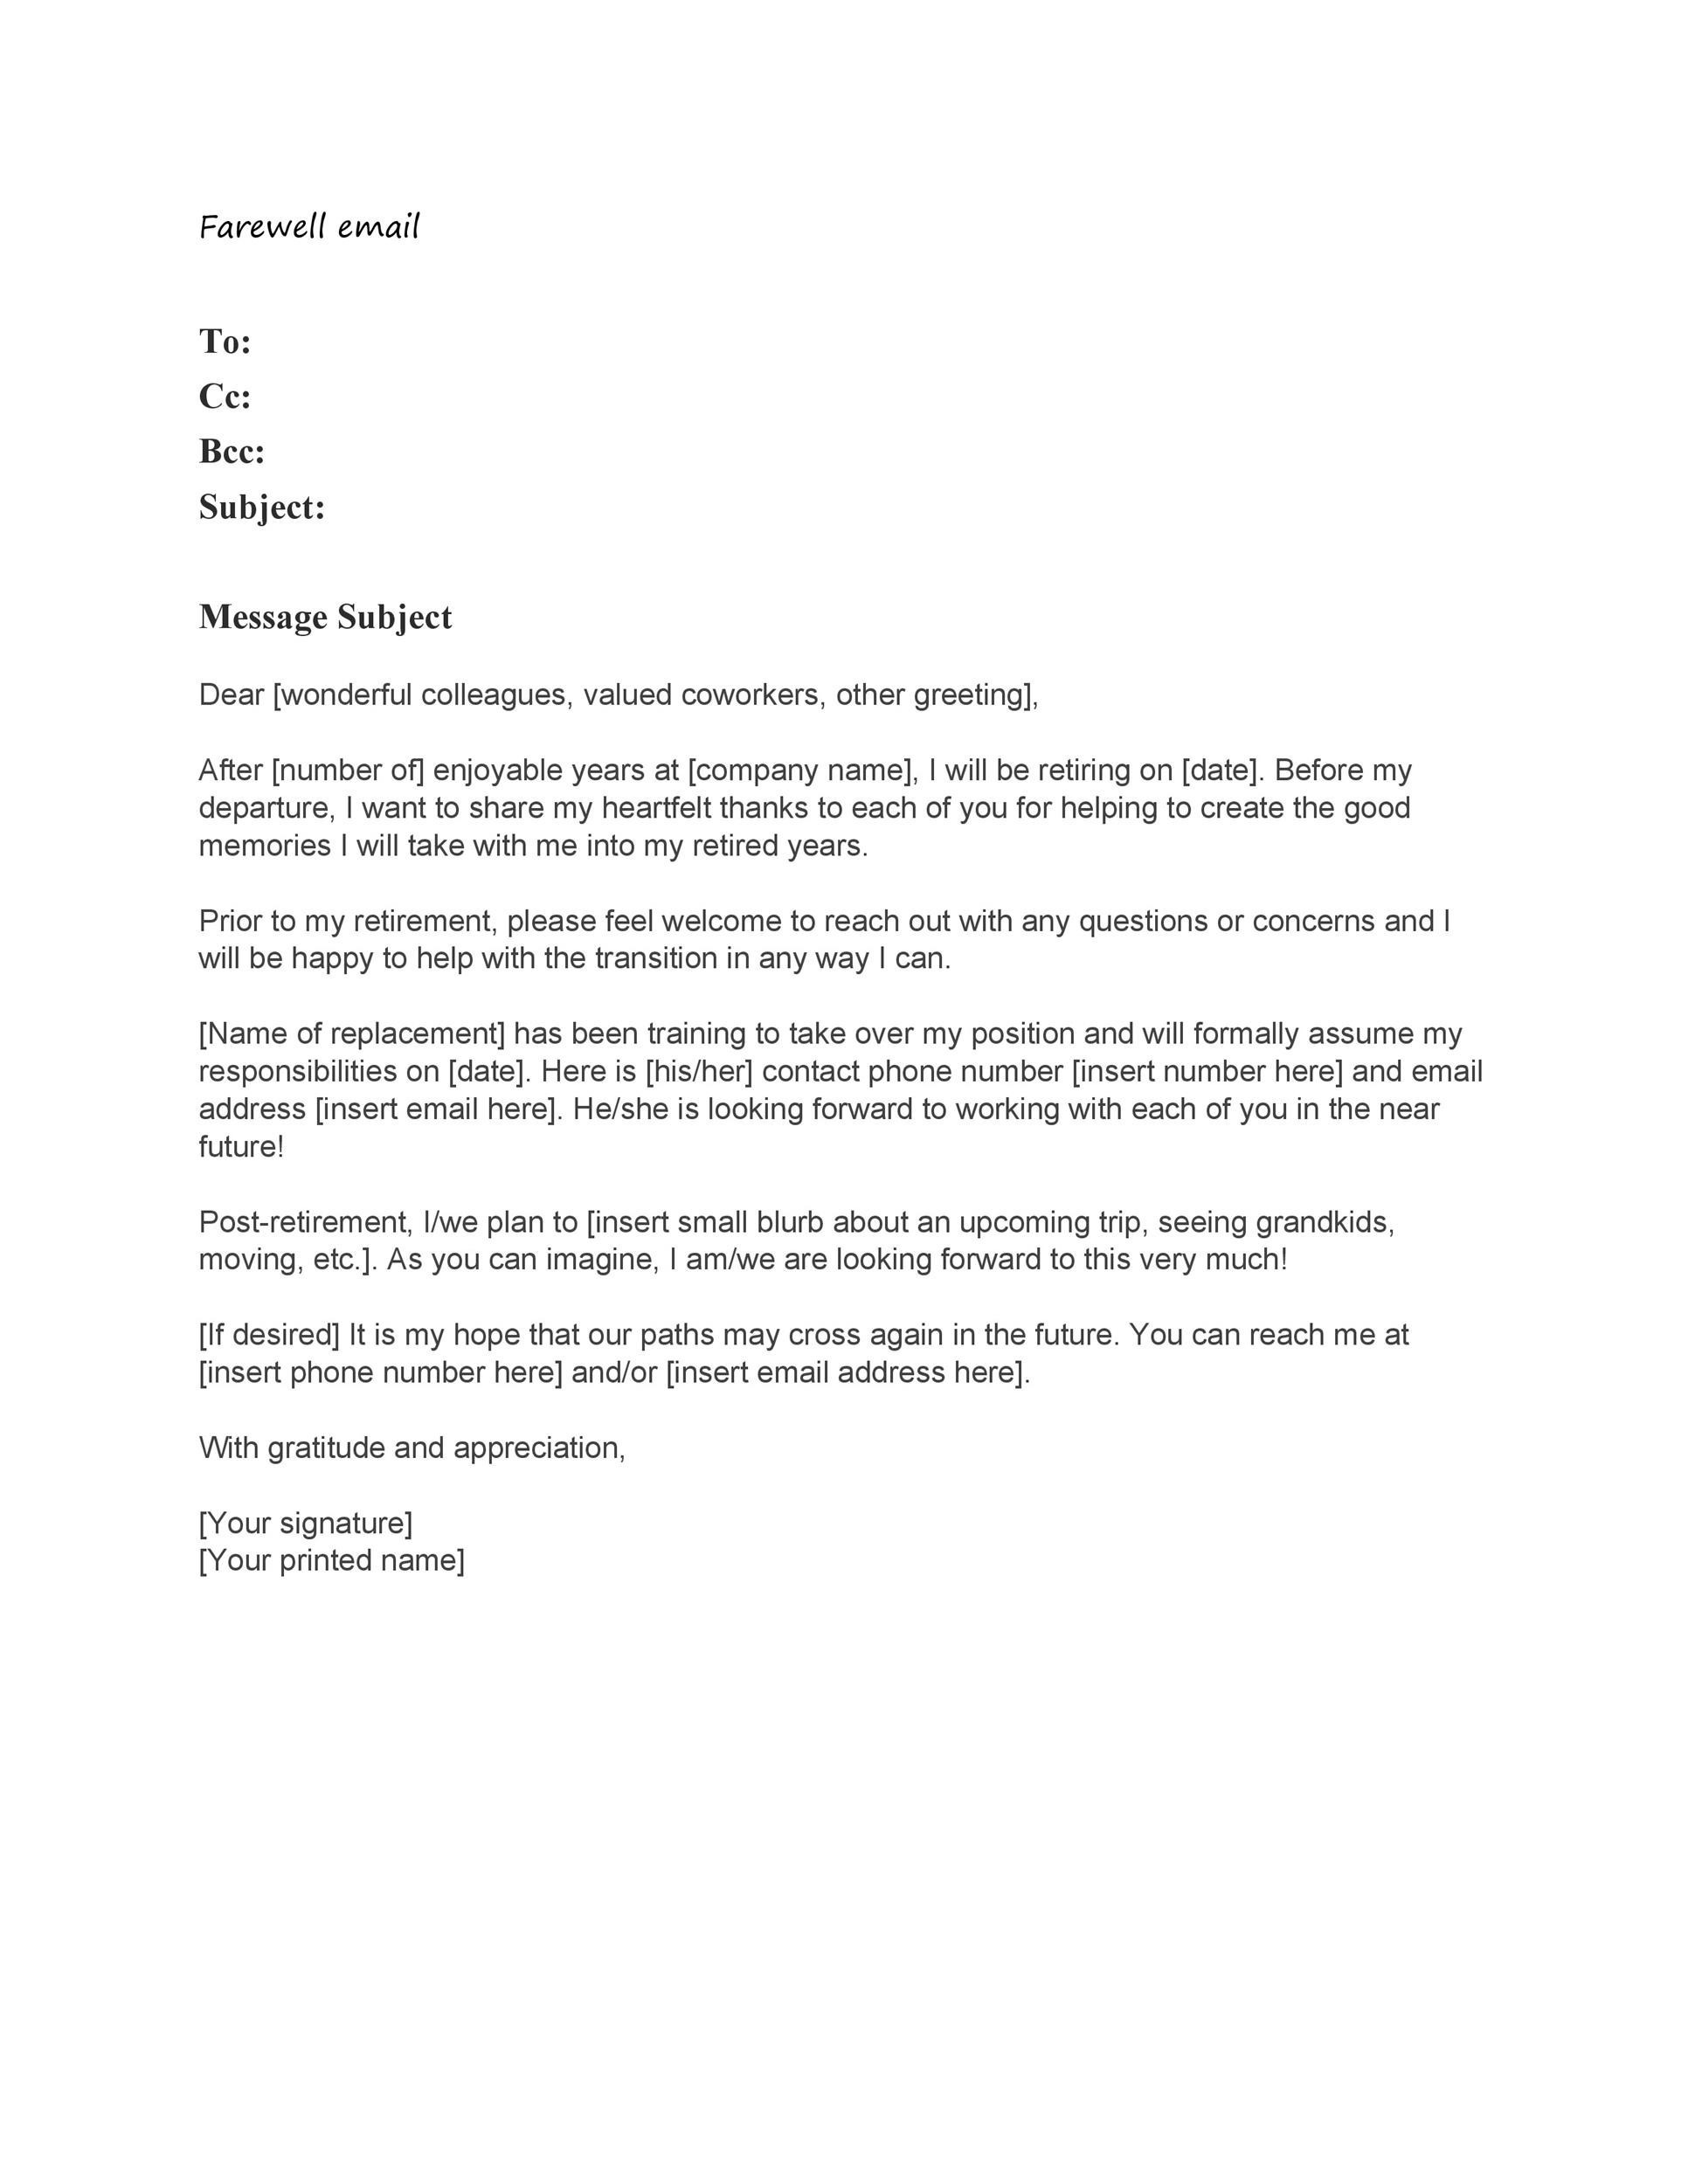 Emotional Farewell Letter To Colleagues from templatelab.com